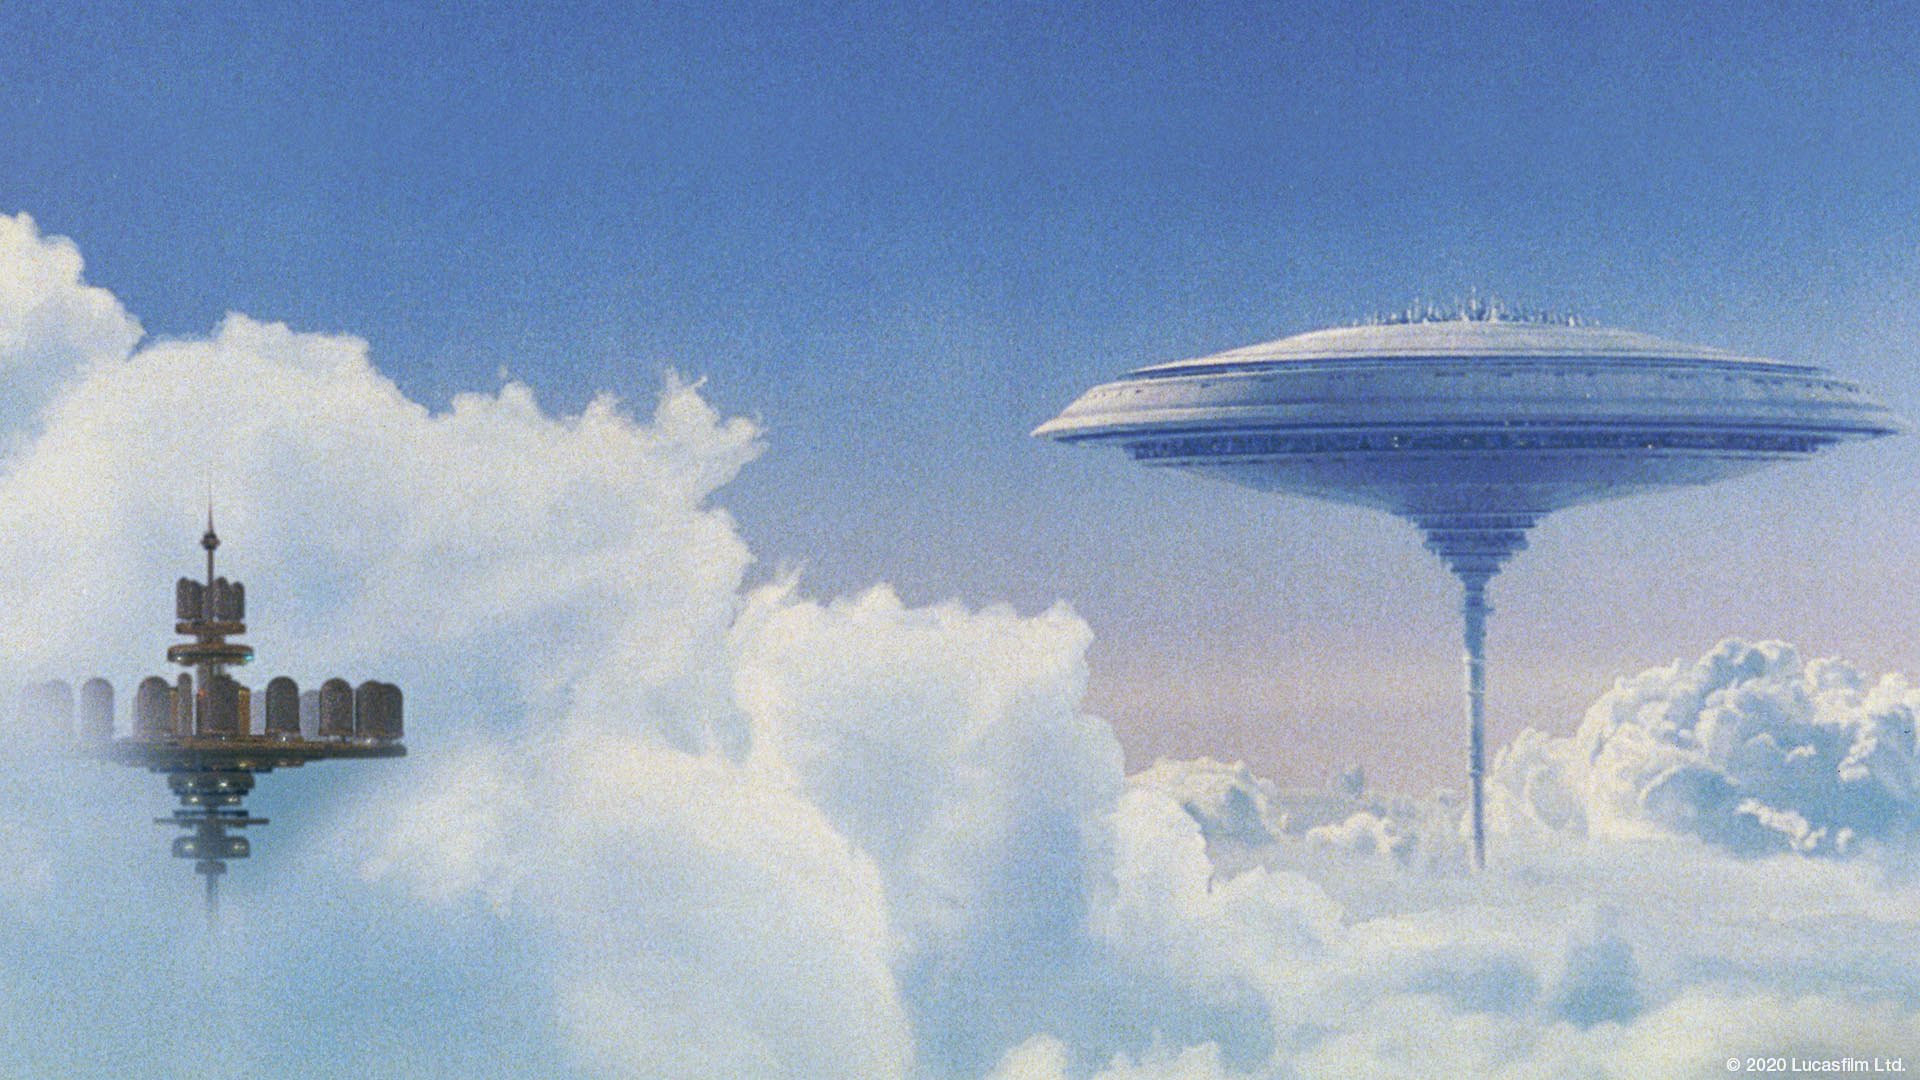 Star Wars 2 - Cloud City